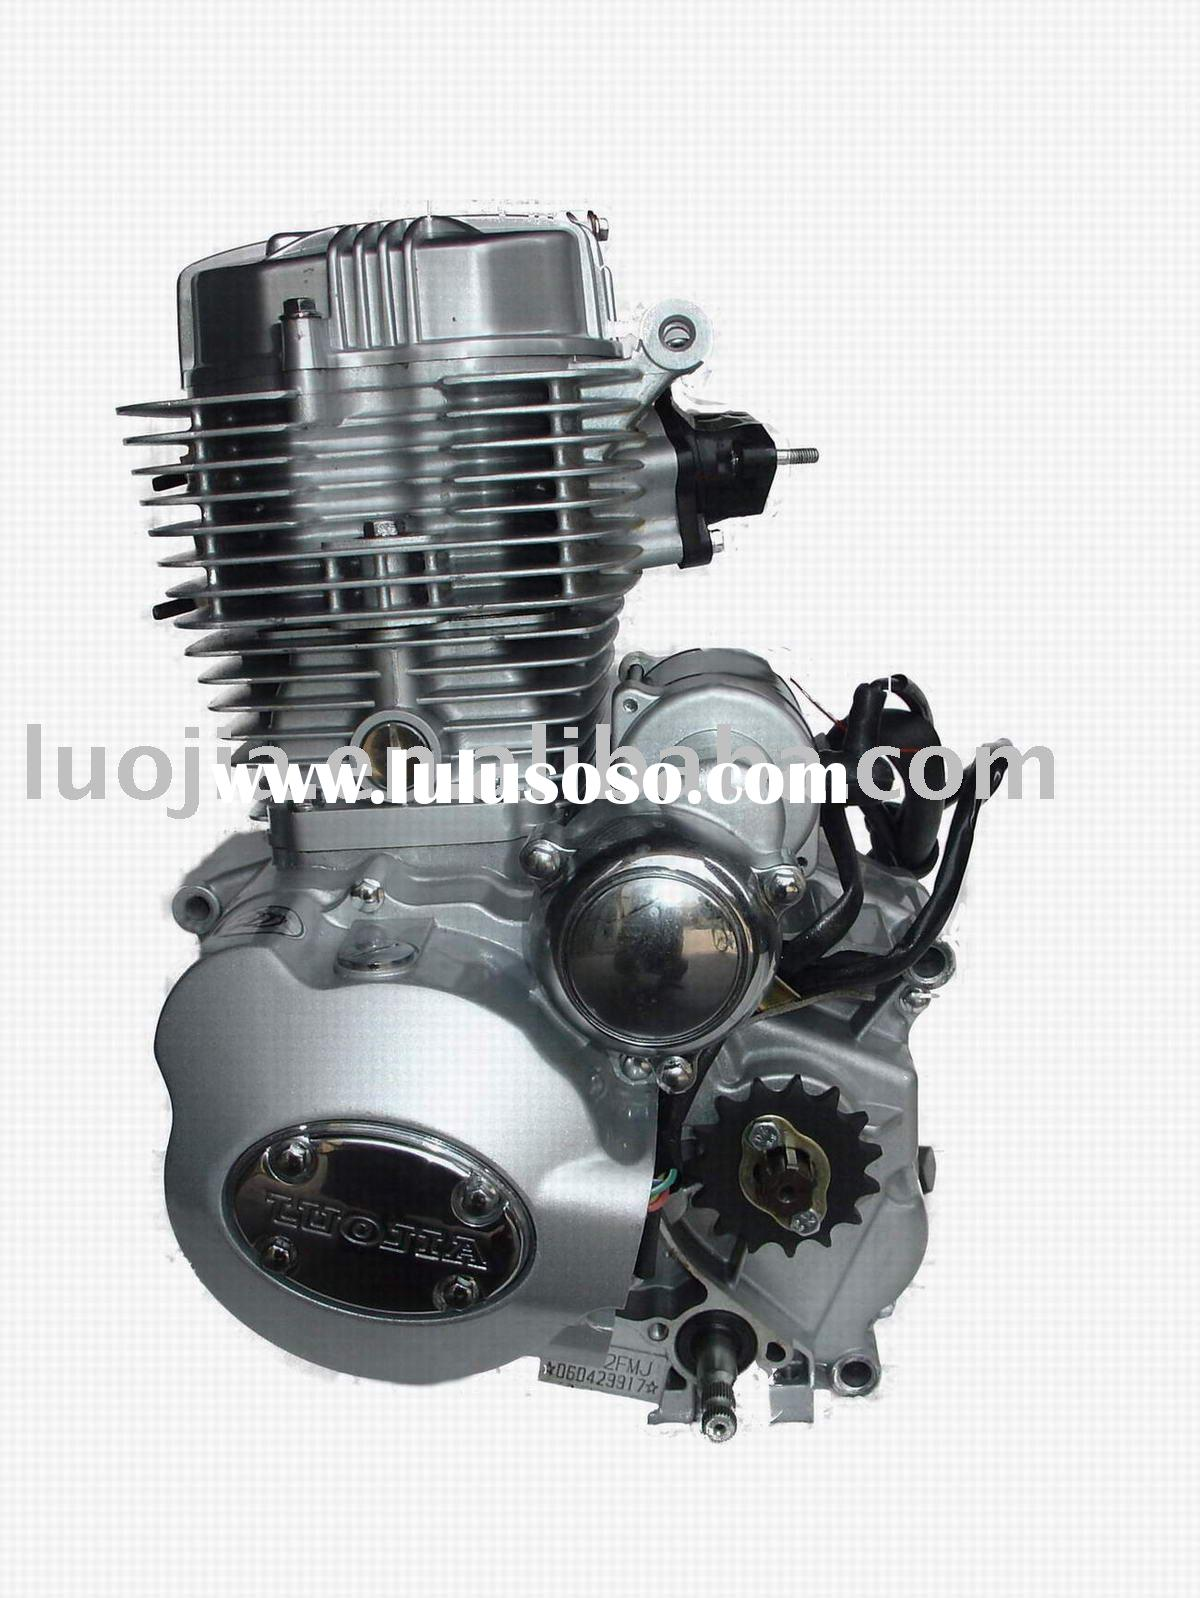 125cc CG125 Vertical 4 stroke ATV Engine